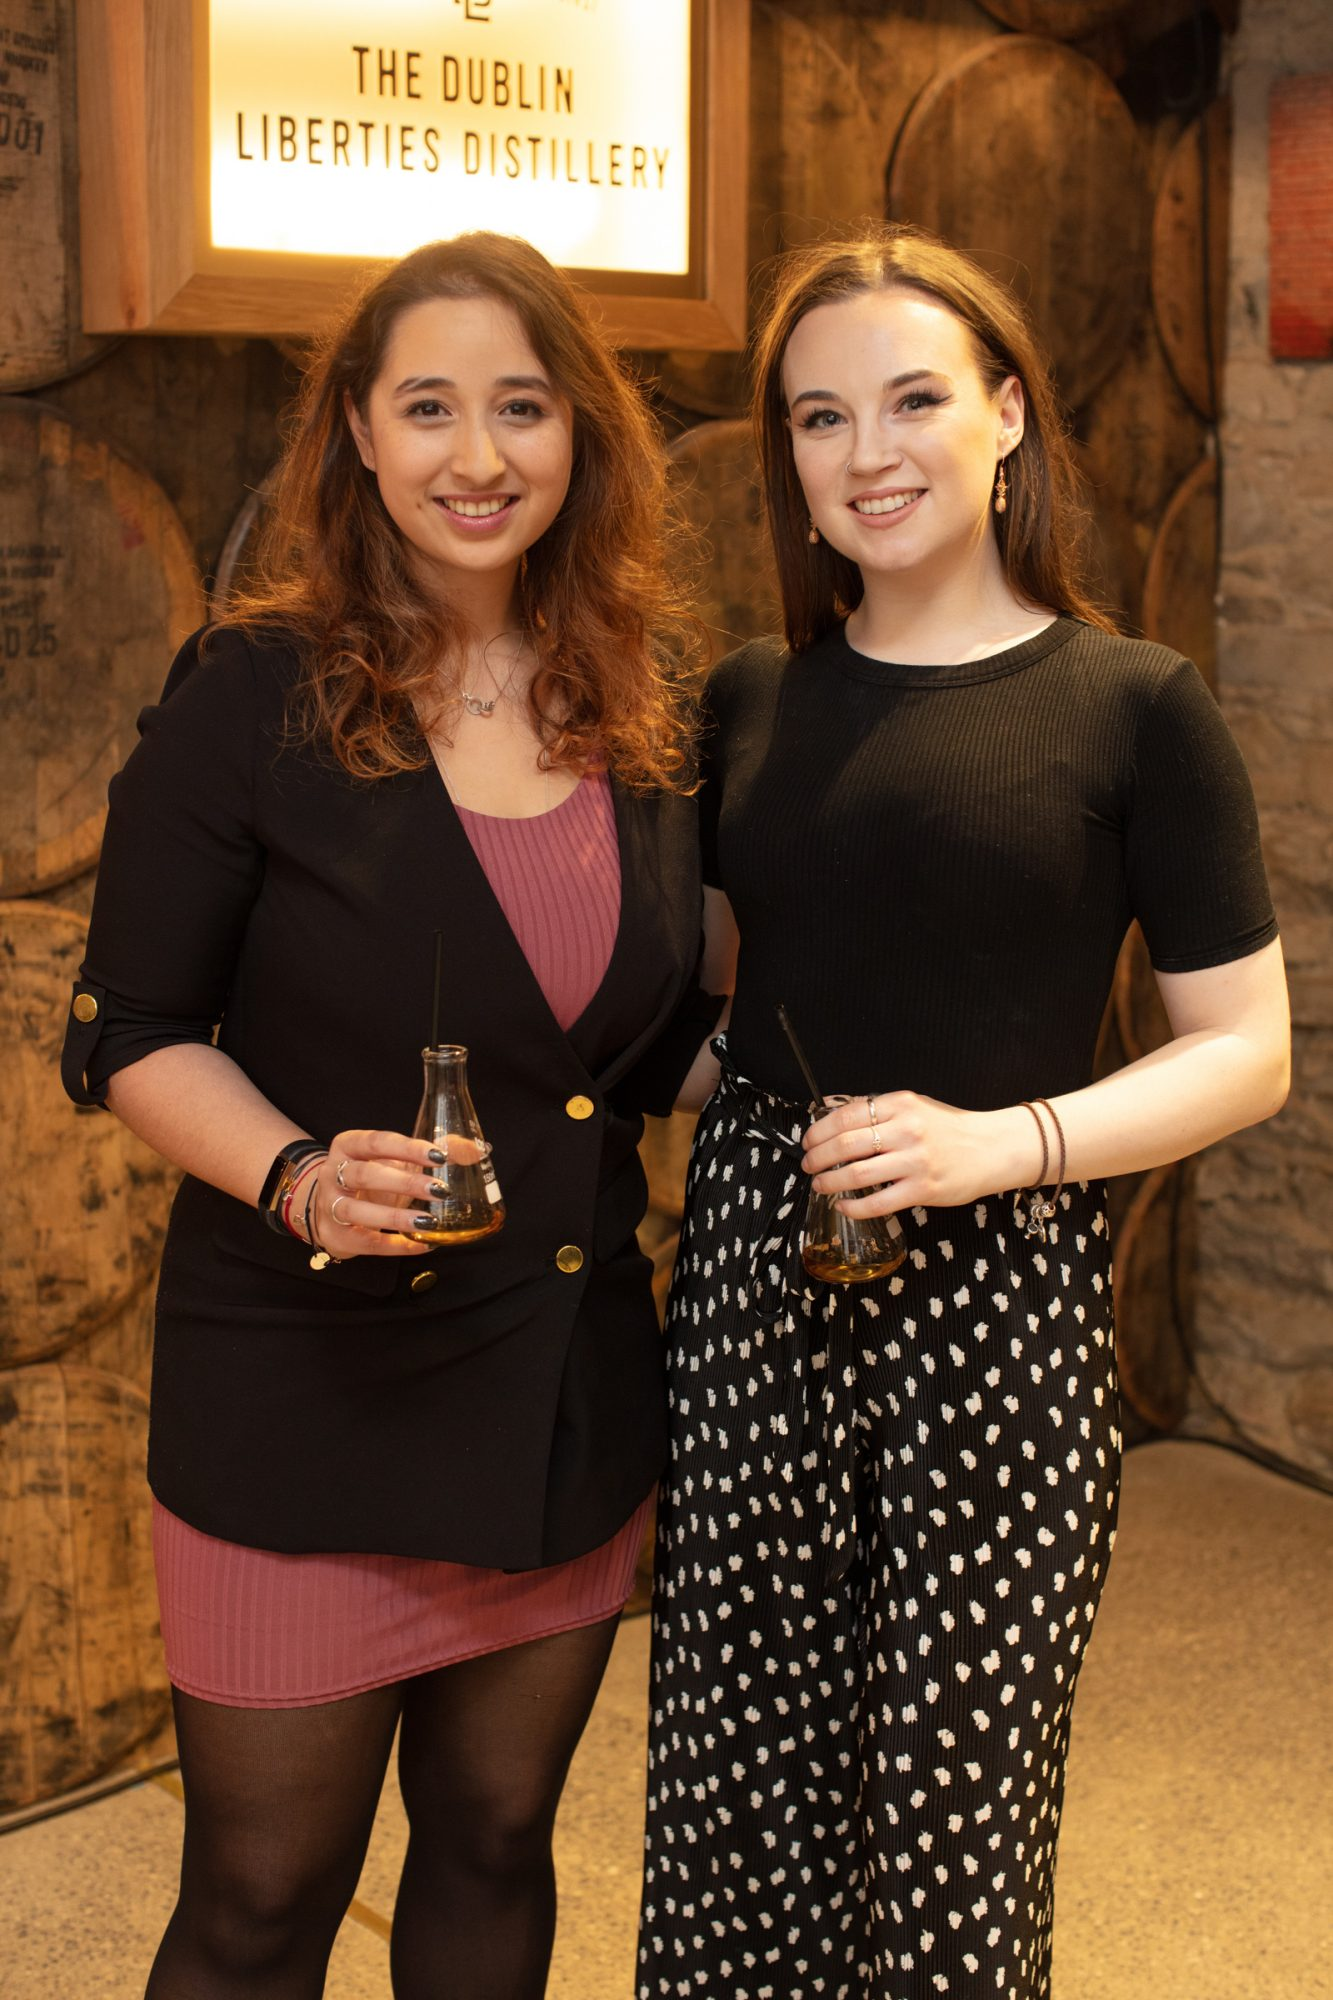 Nirina Plunkett & Hannah Moyne pictured at the preview of The Dublin Liberties Distillery, the much anticipated new craft distillery in the heart of the Liberties. Photo: Anthony Woods.